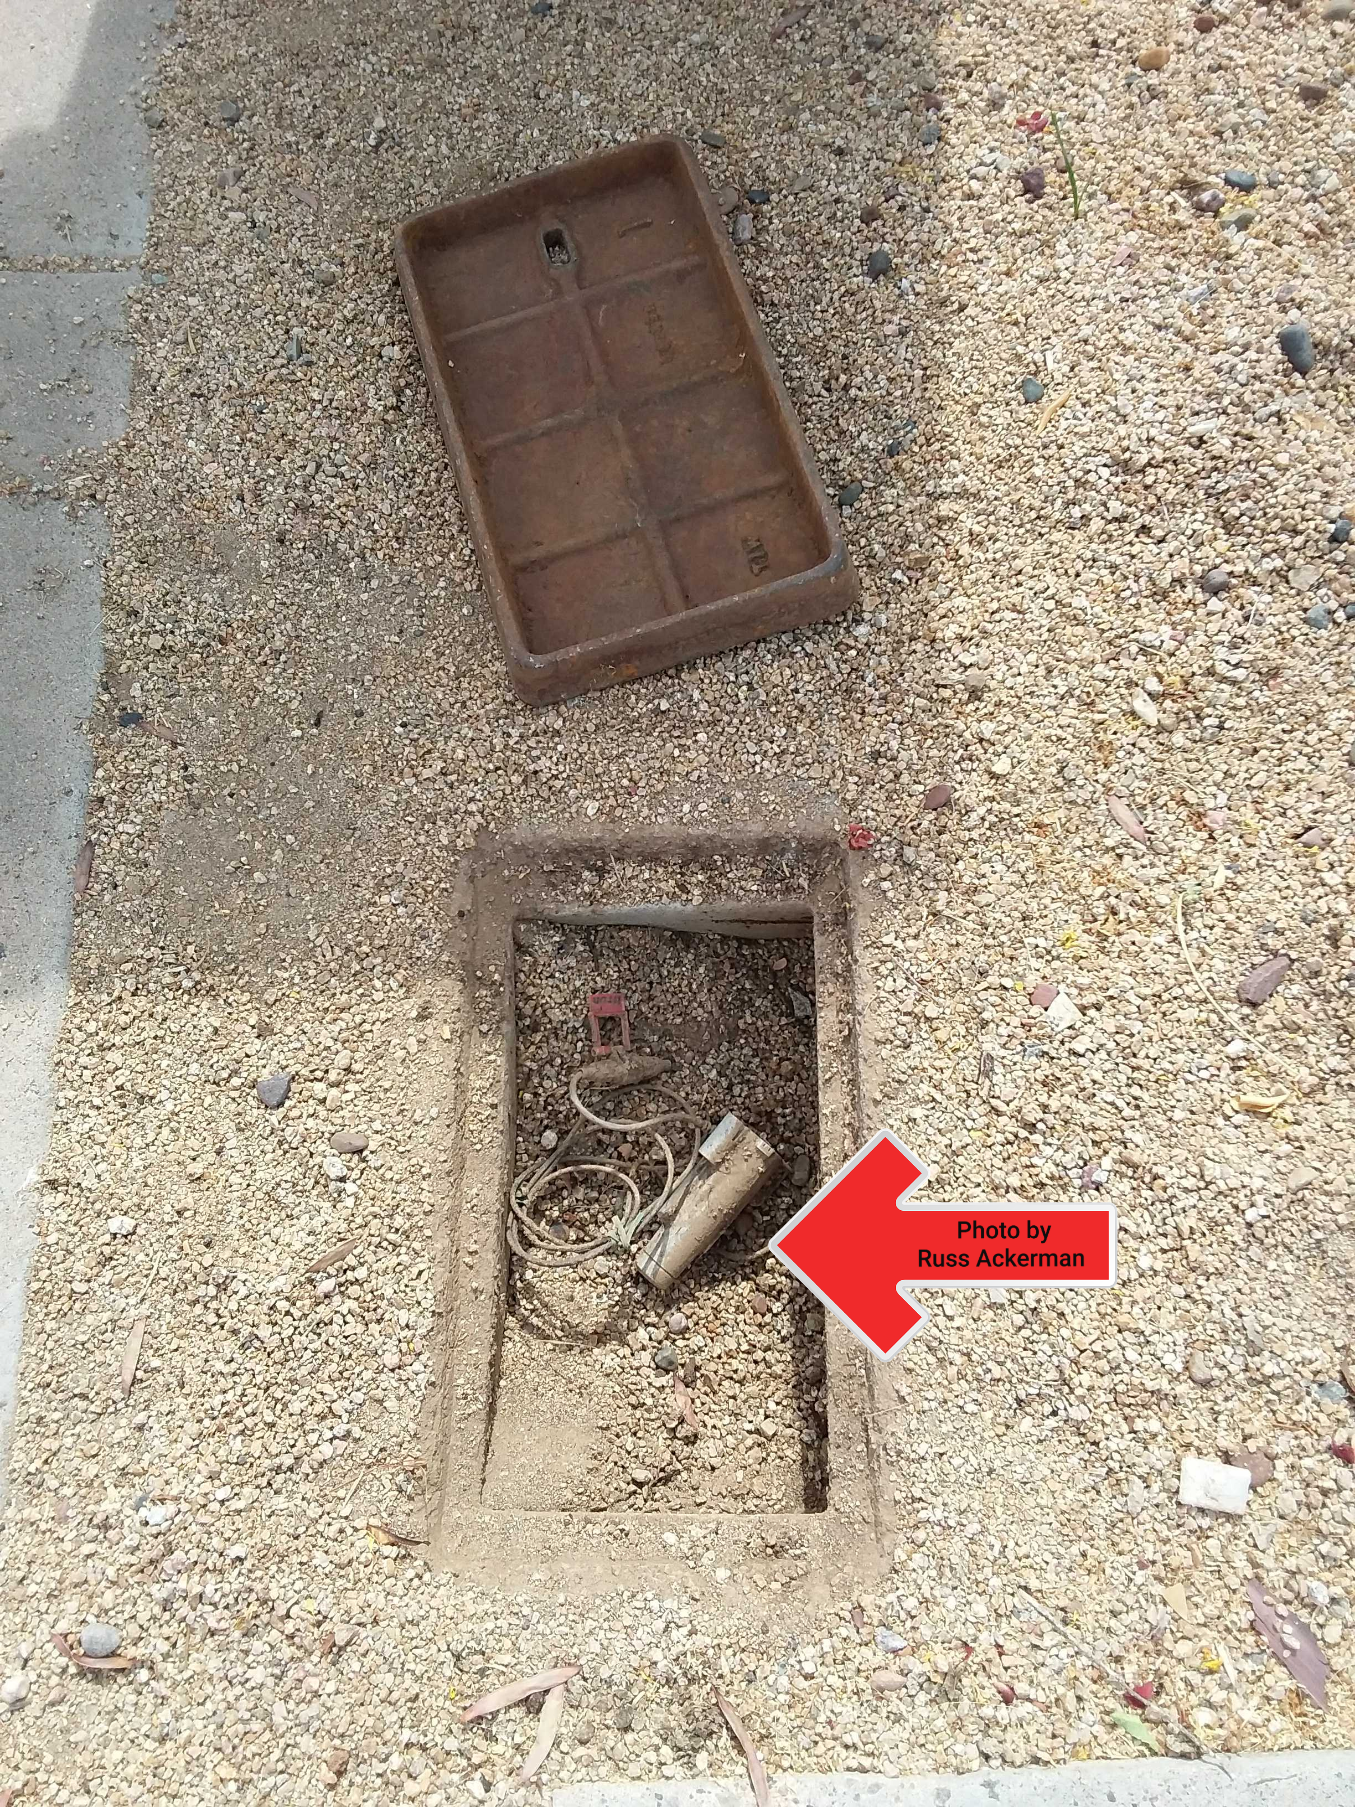 This water meter is MIA. Water meters should not be buried under piles of rock and dirt, but often are.